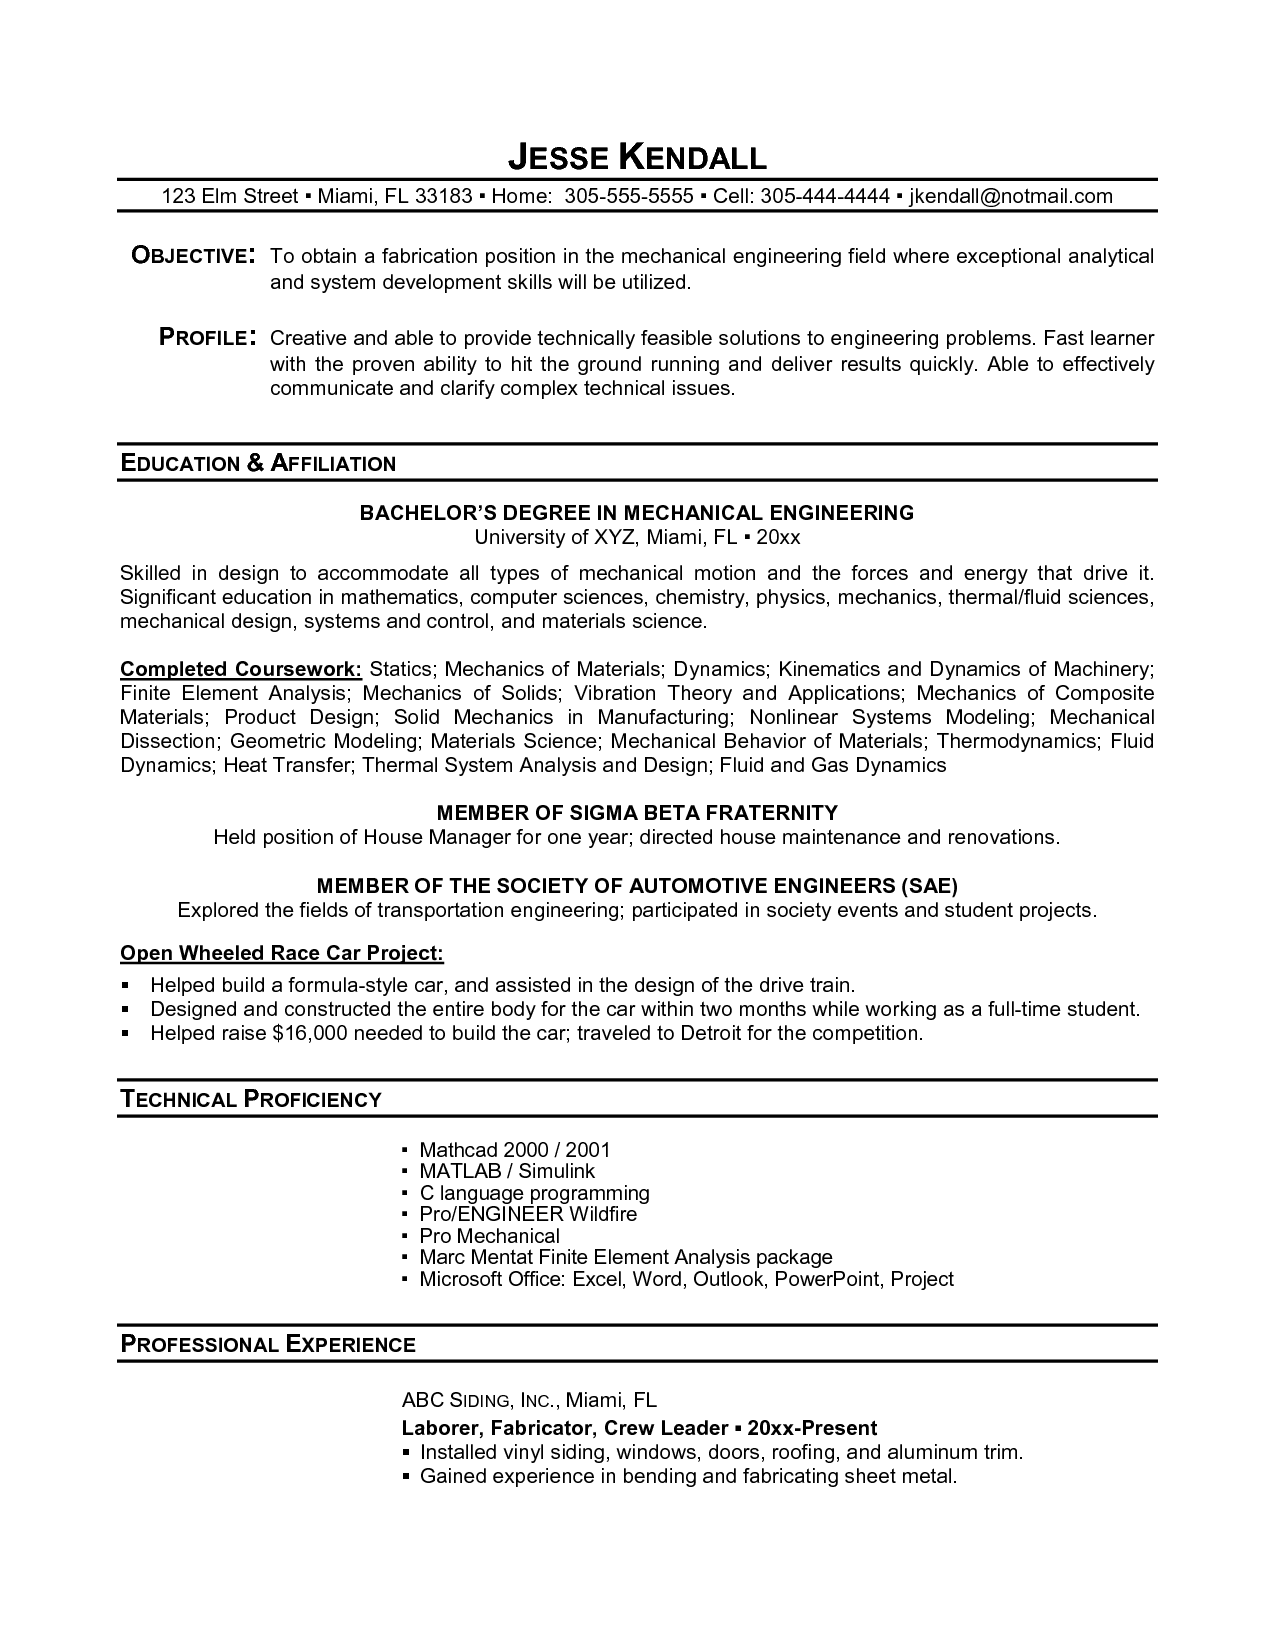 sample education resume template free resume sample information pinterest sample education resume template free resume sample information pinterest